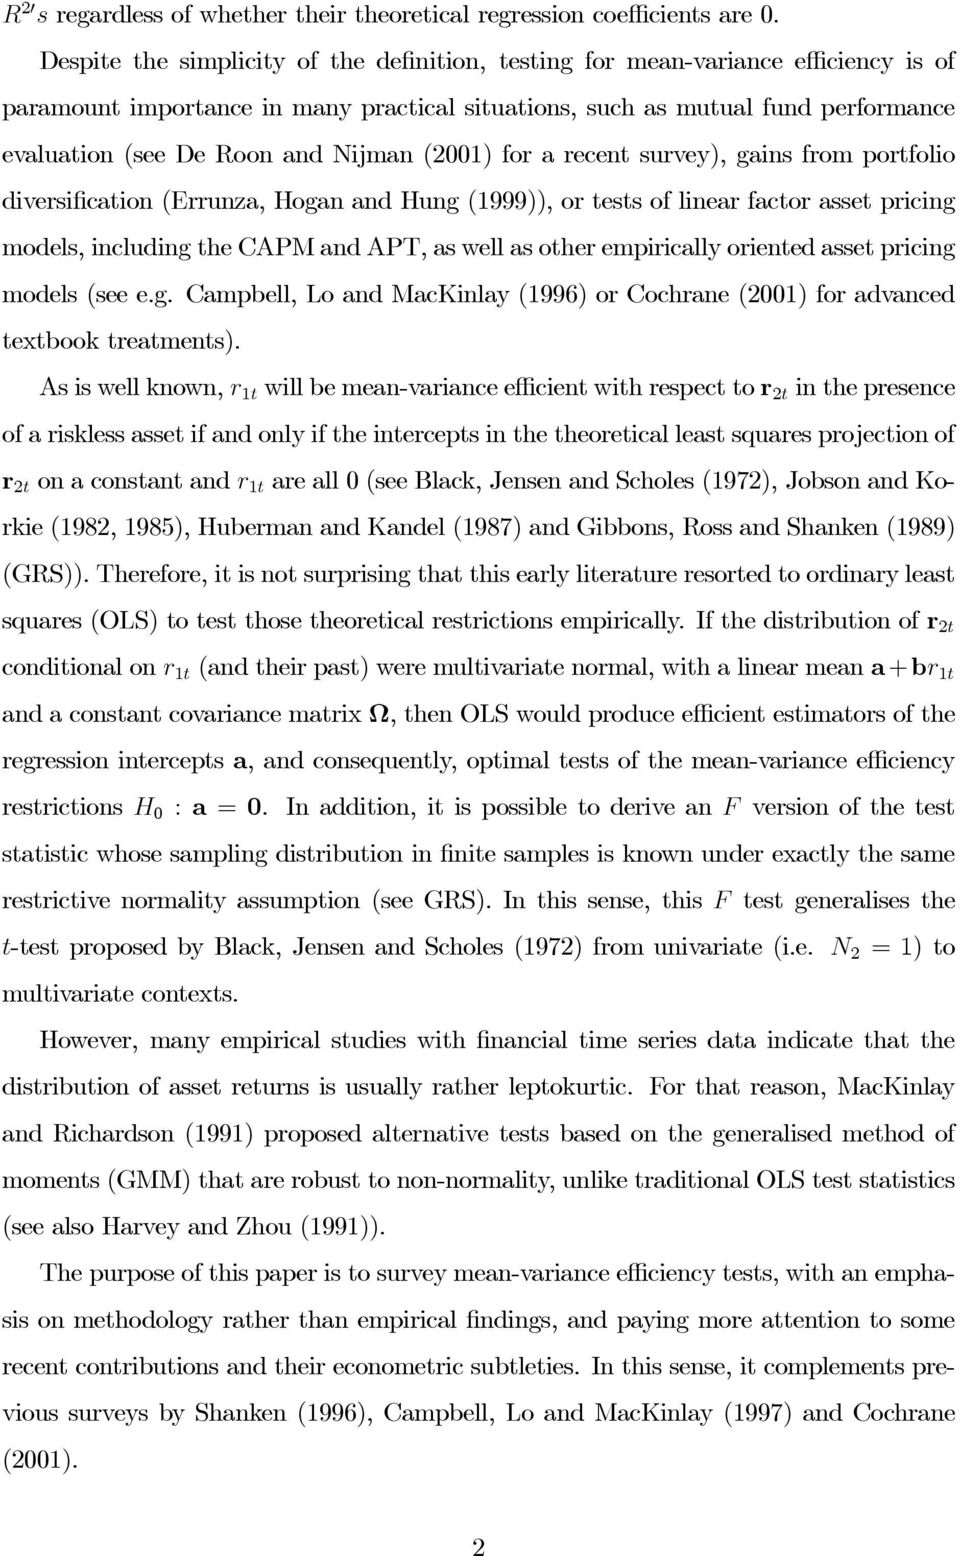 Nijman (2001) for a recent survey), gains from portfolio diversification (Errunza, Hogan and Hung (1999)), or tests of linear factor asset pricing models, including the CAPM and APT, as well as other